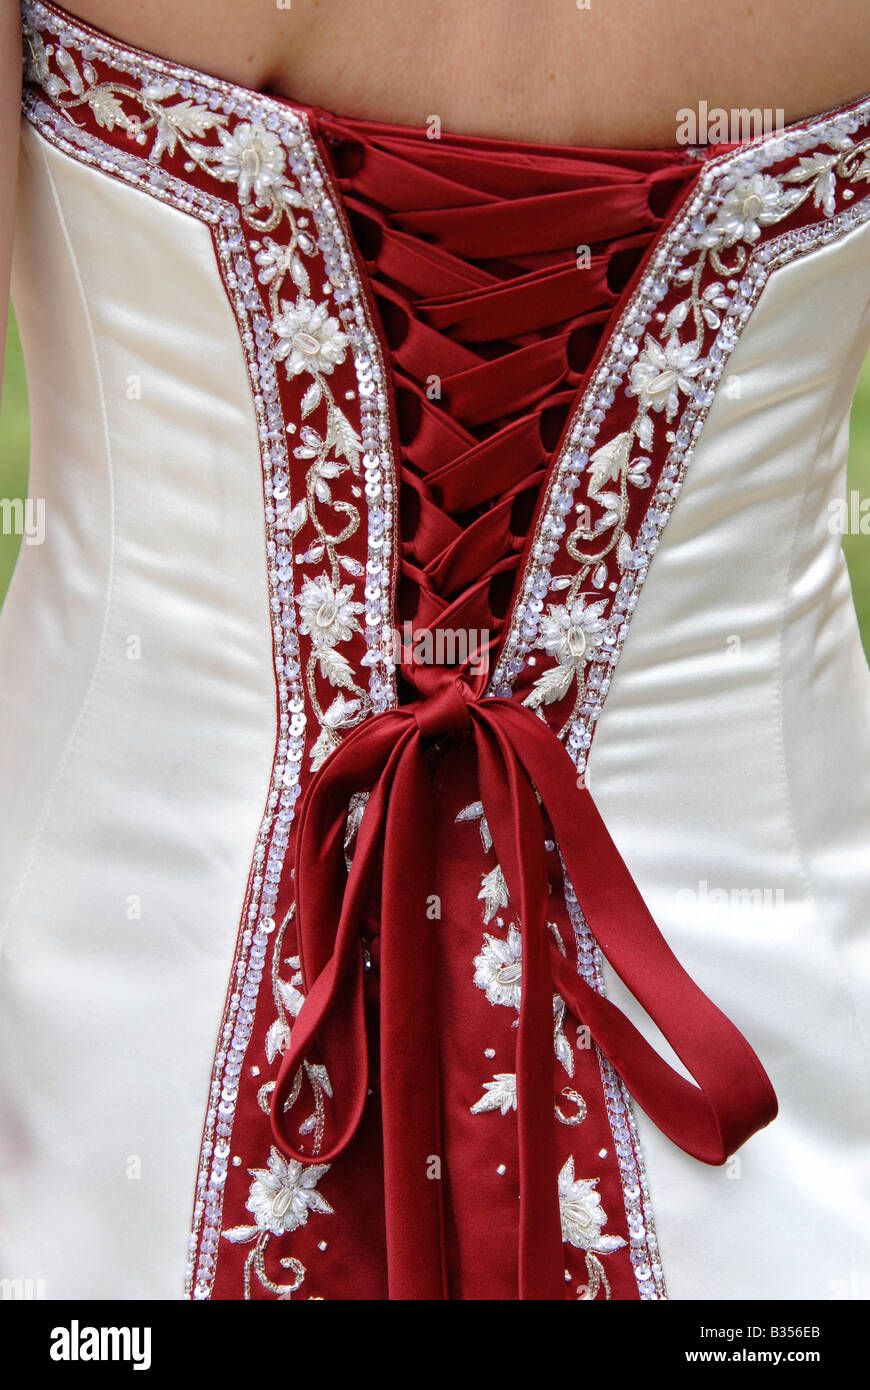 The back of a bride\'s red and white wedding dress showing the lacing ...